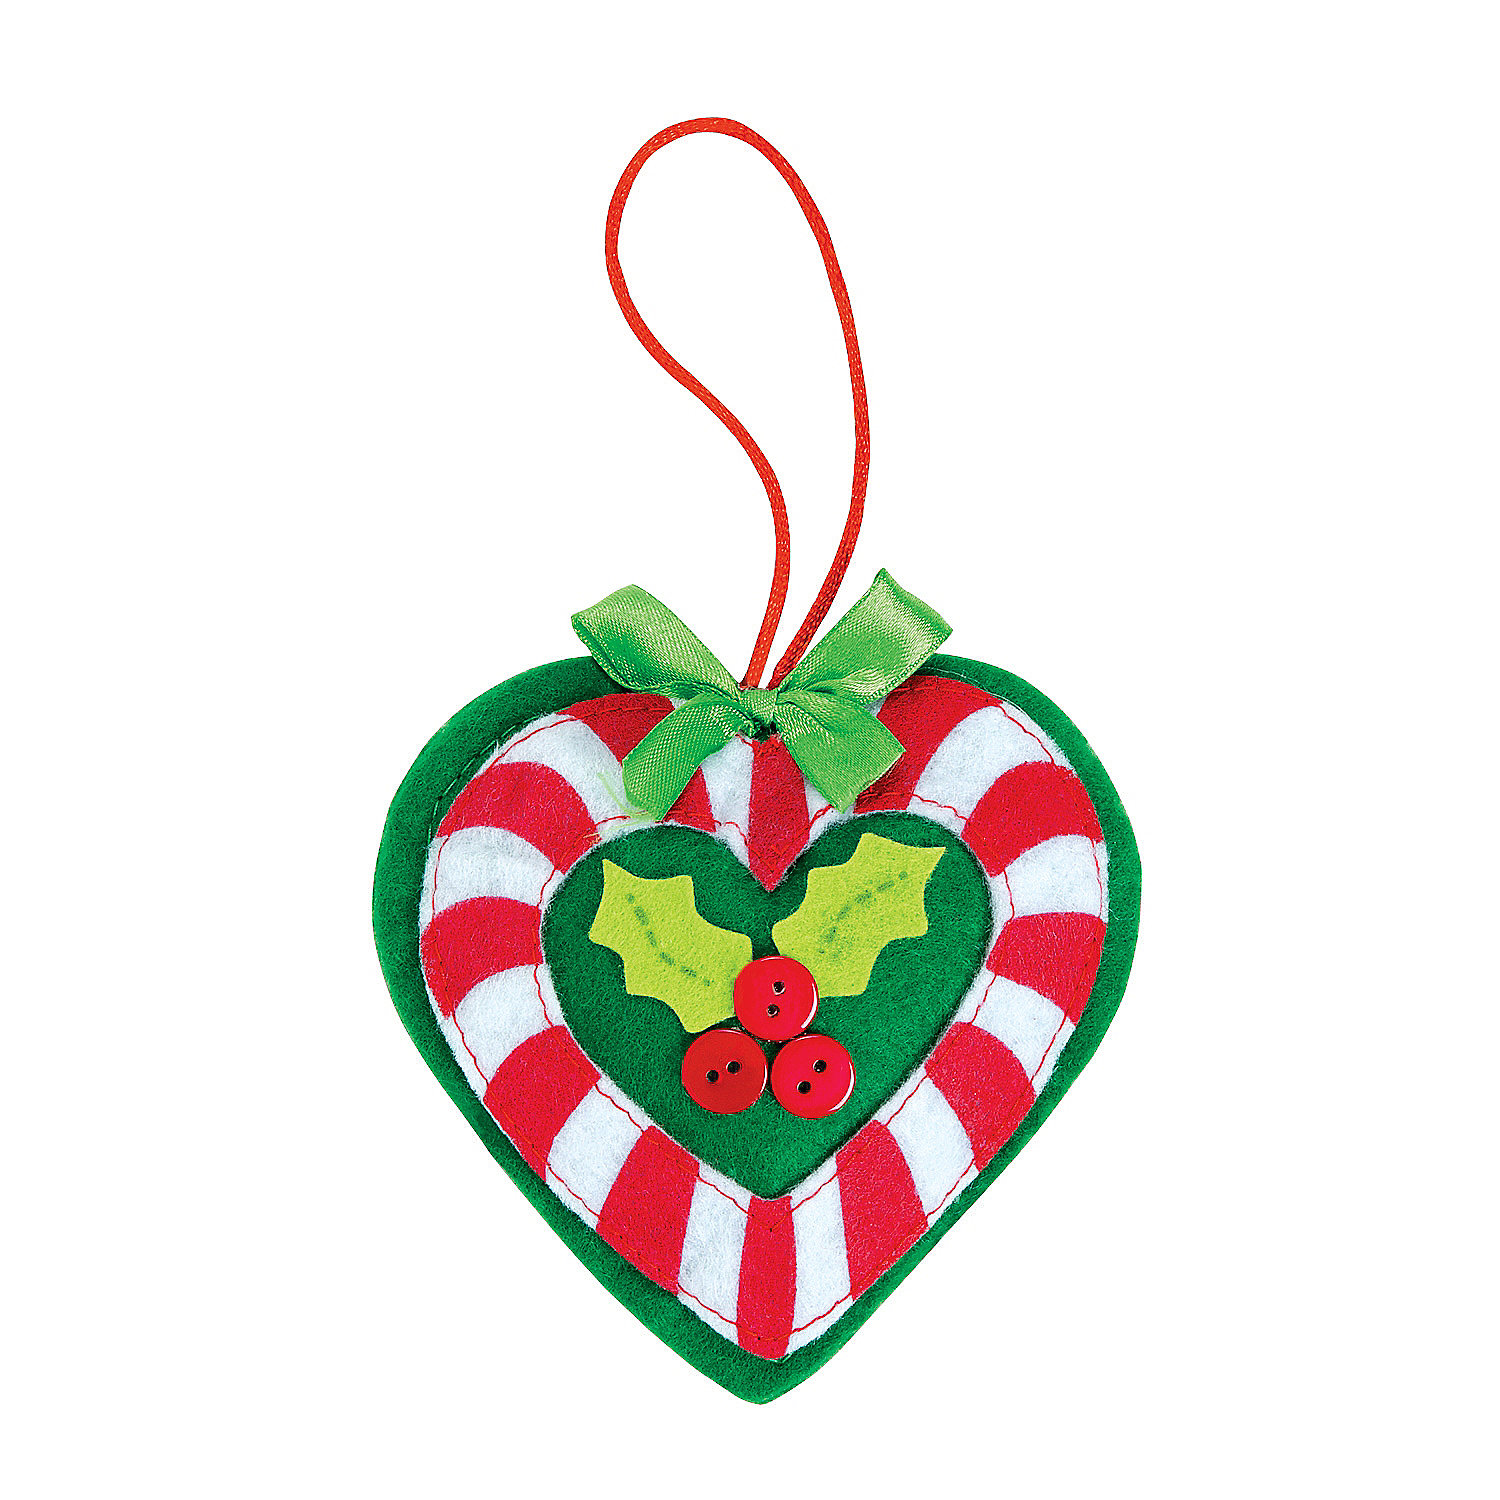 Candy cane heart ornament craft kit ornament crafts for Candy cane crafts for adults